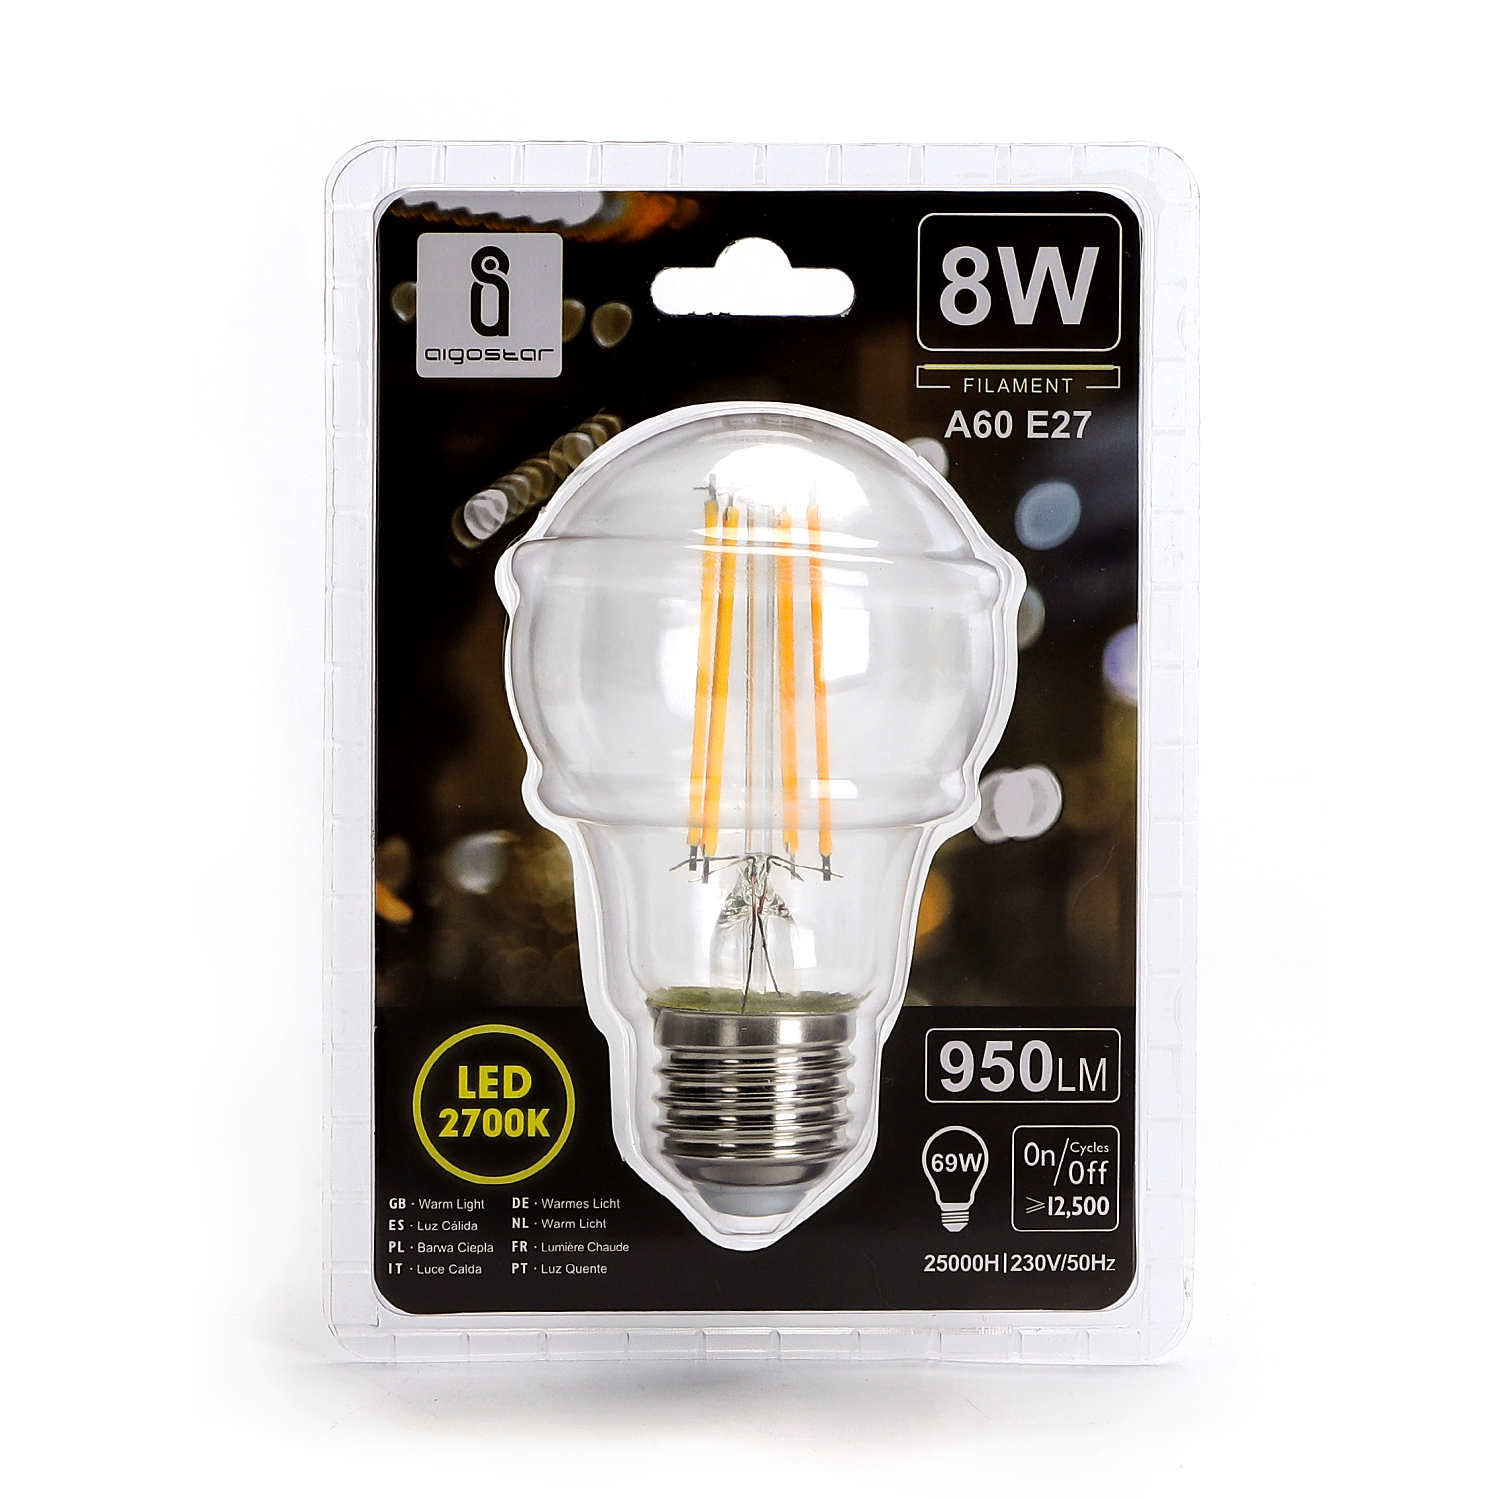 LED Filament Peer lamp 8 Watt grote fitting E27 A60 2700K Warm wit - voorkant verpakking